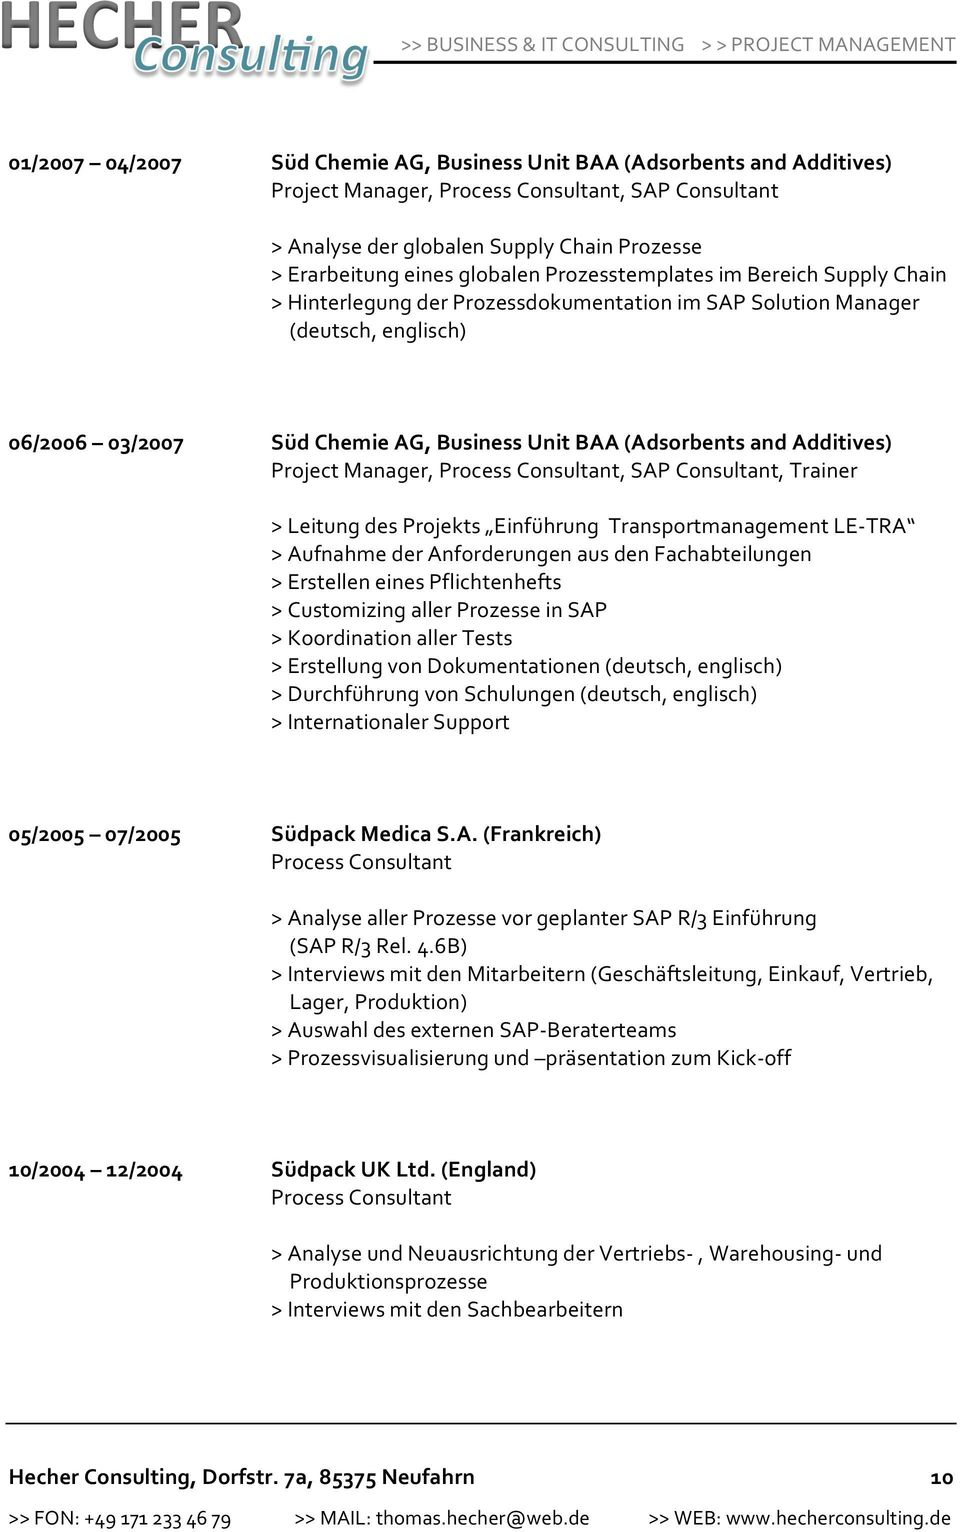 Additives) Project Manager, Process Consultant, SAP Consultant, Trainer > Leitung des Projekts Einführung Transportmanagement LE- TRA > Aufnahme der Anforderungen aus den Fachabteilungen > Erstellen